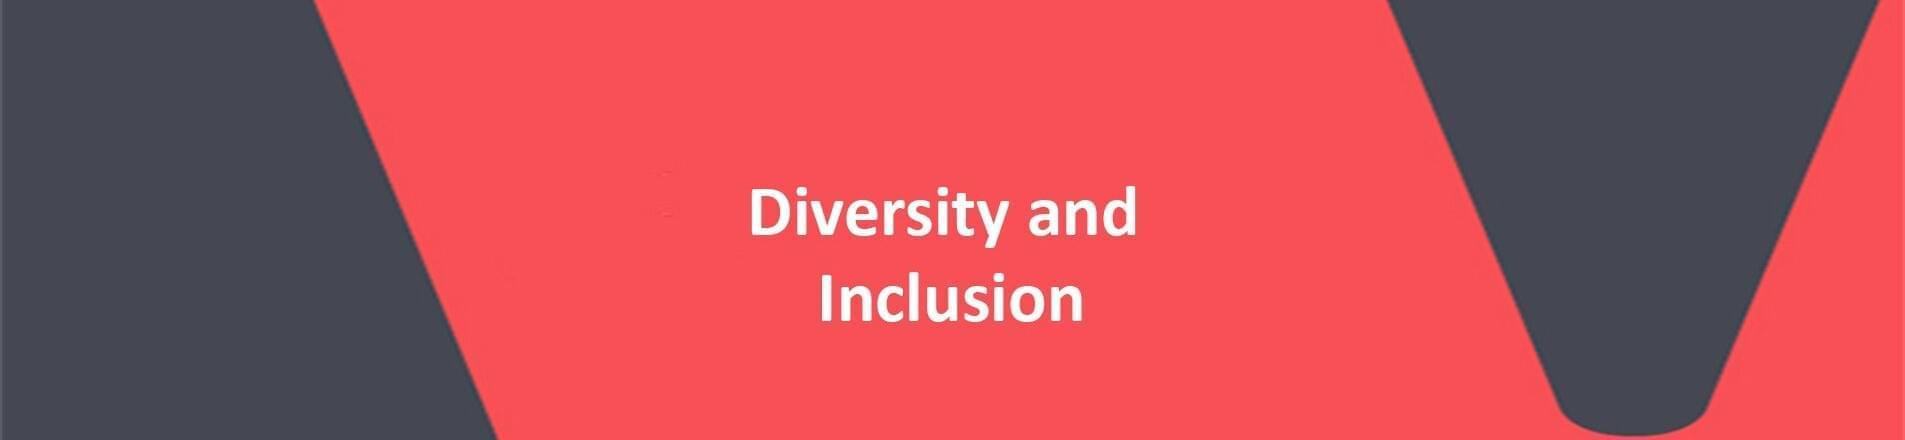 Words Diversity and Inclusion on Vercida branded background